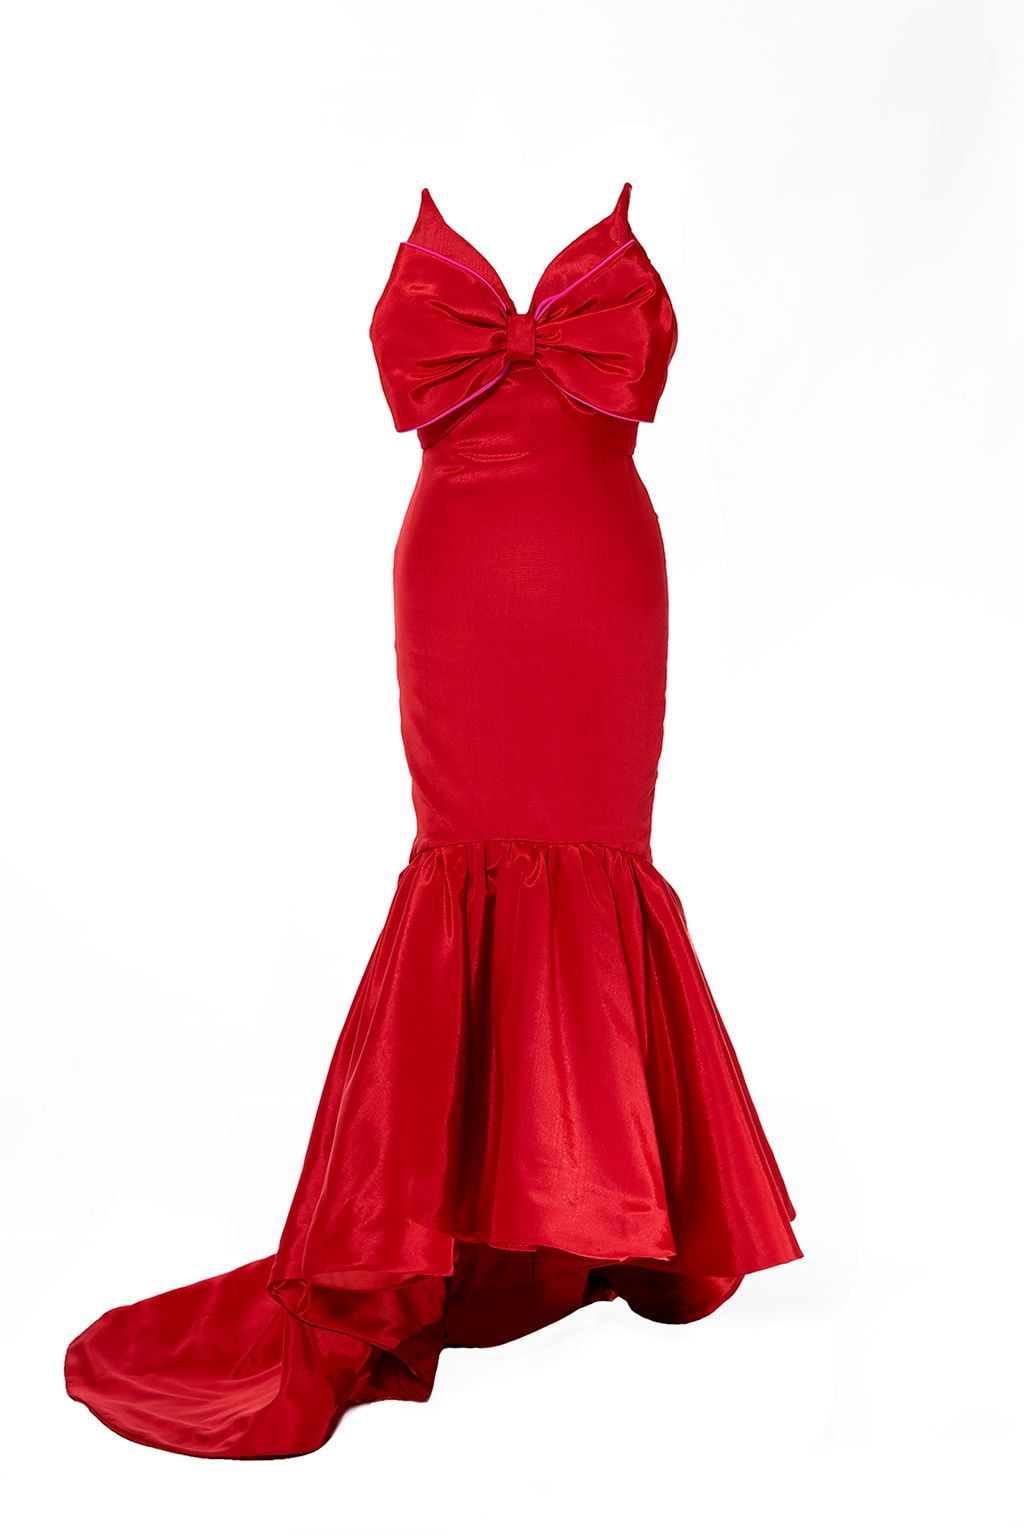 Doubnia DressMaker Product Photography